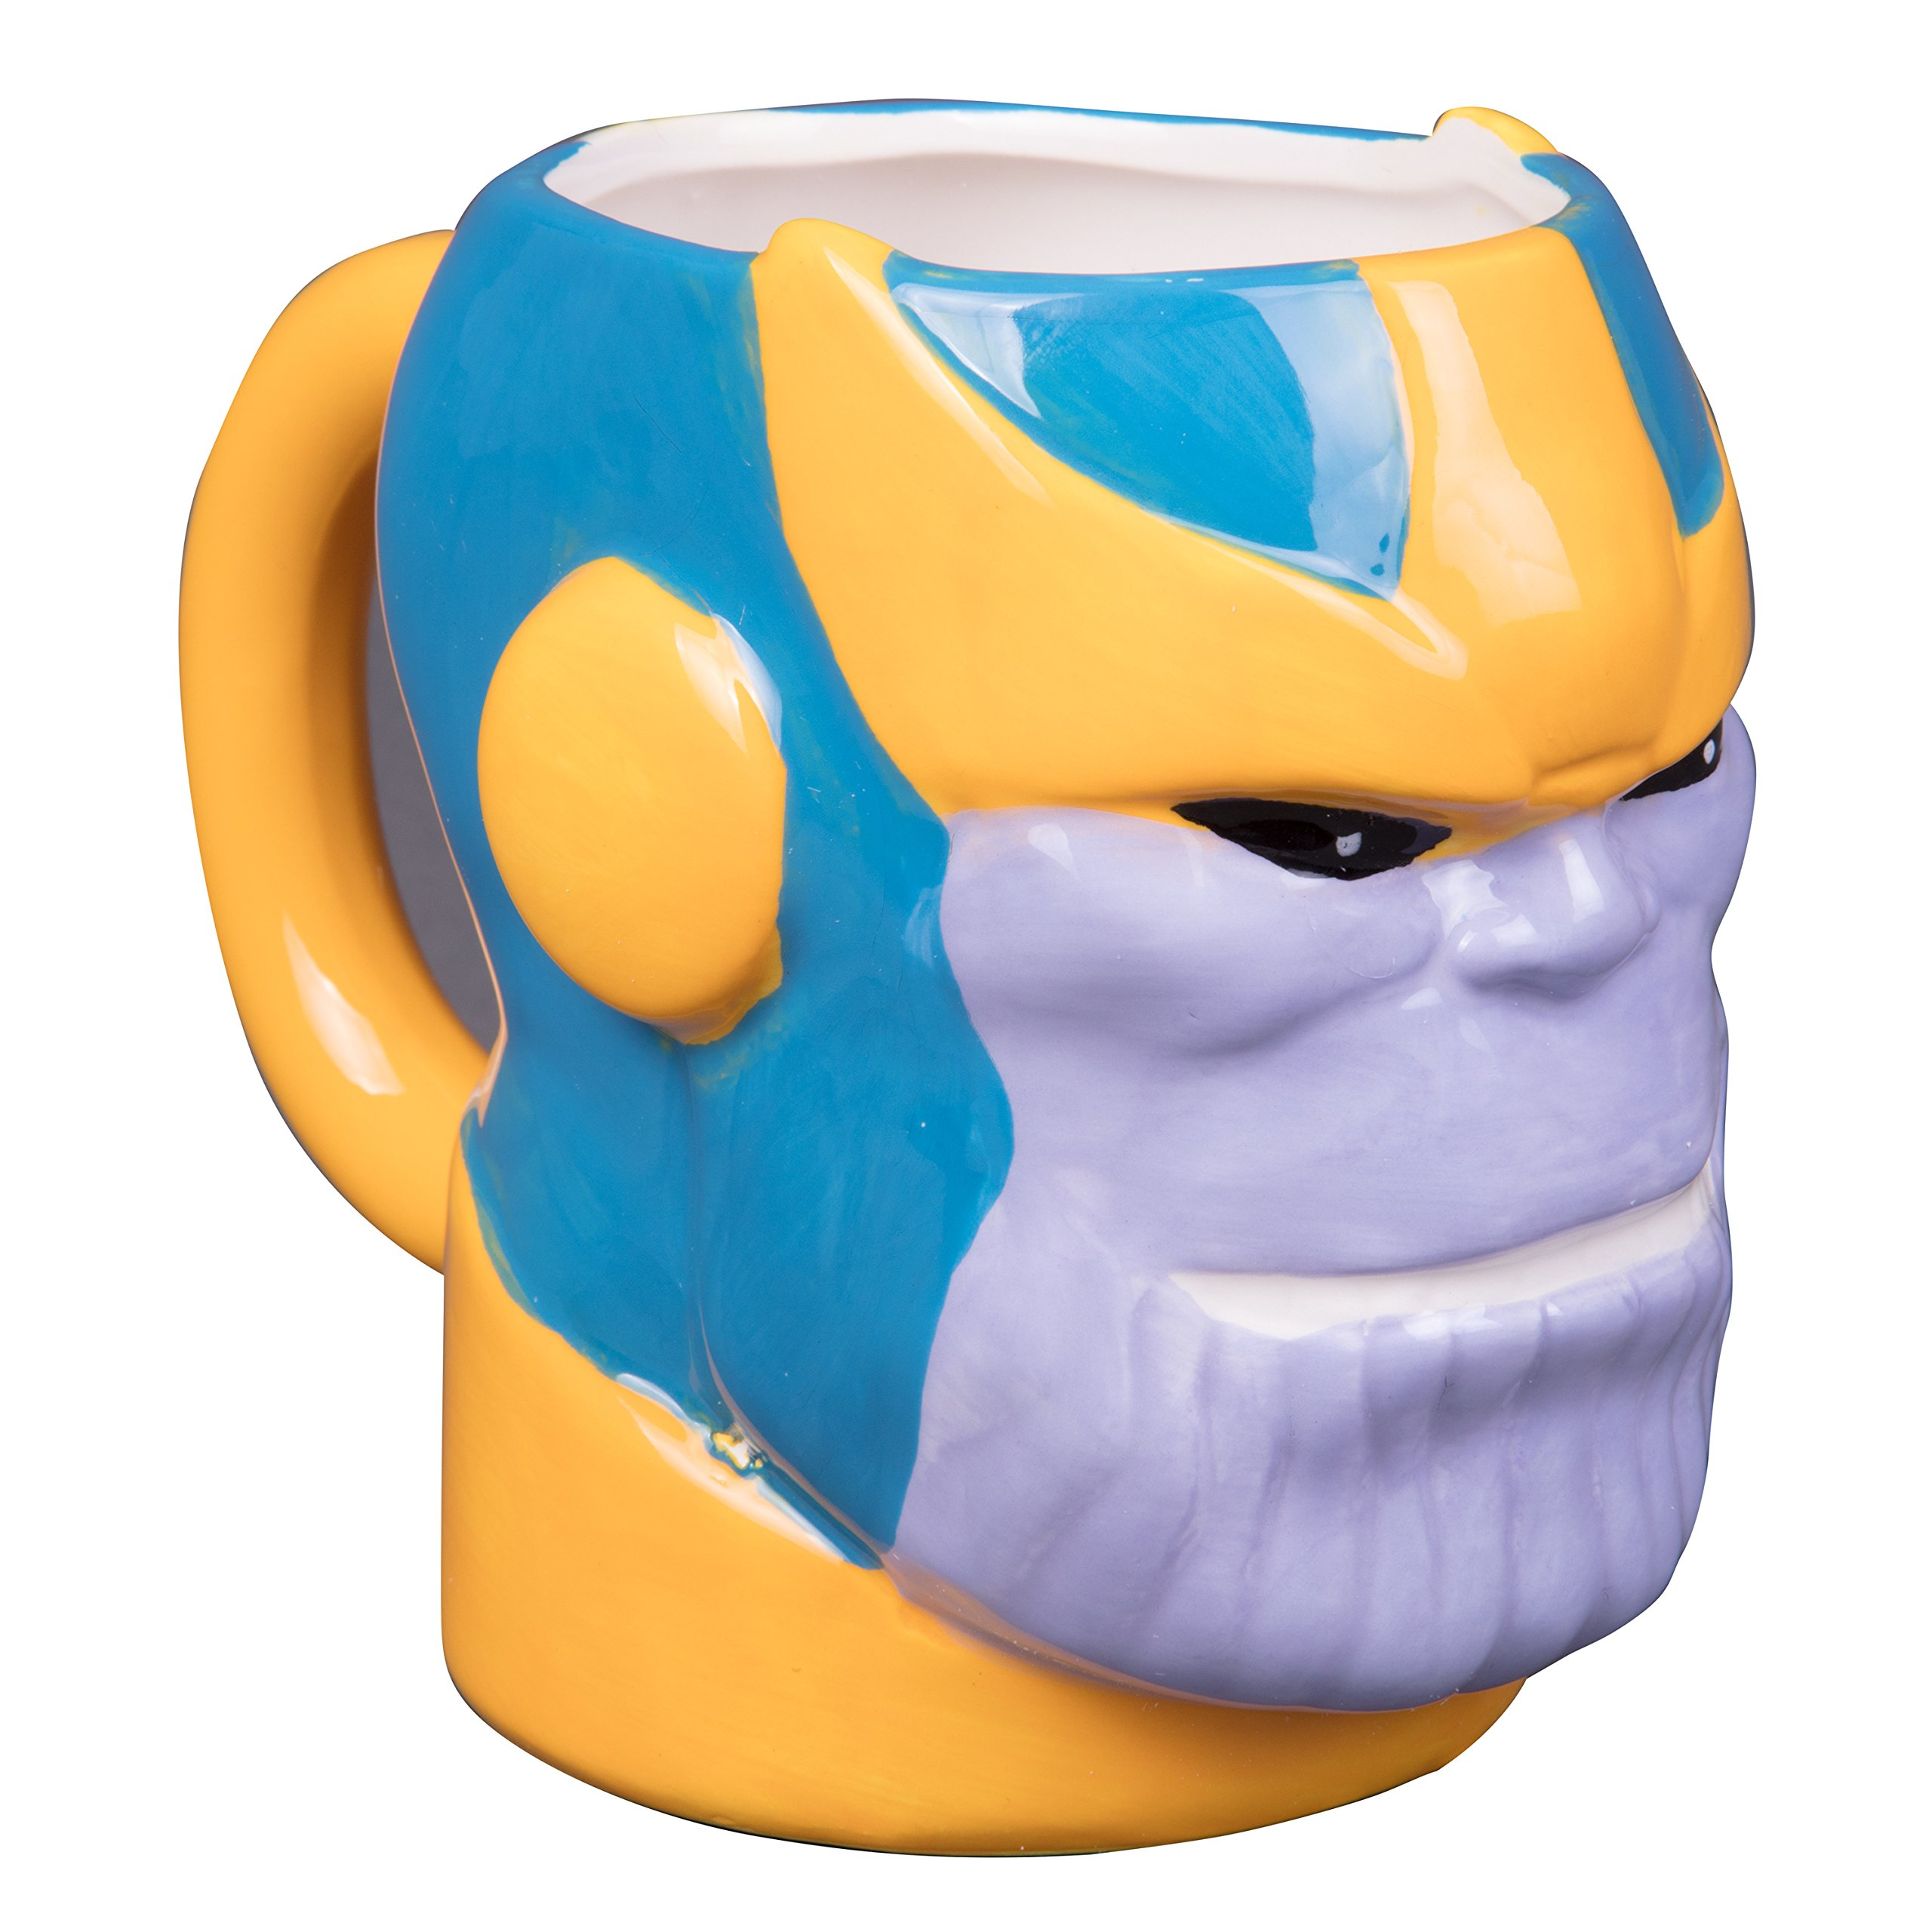 Marvel Avengers : Infinity War - Thanos Figural 3-D Ceramic Coffee Mug - 18oz